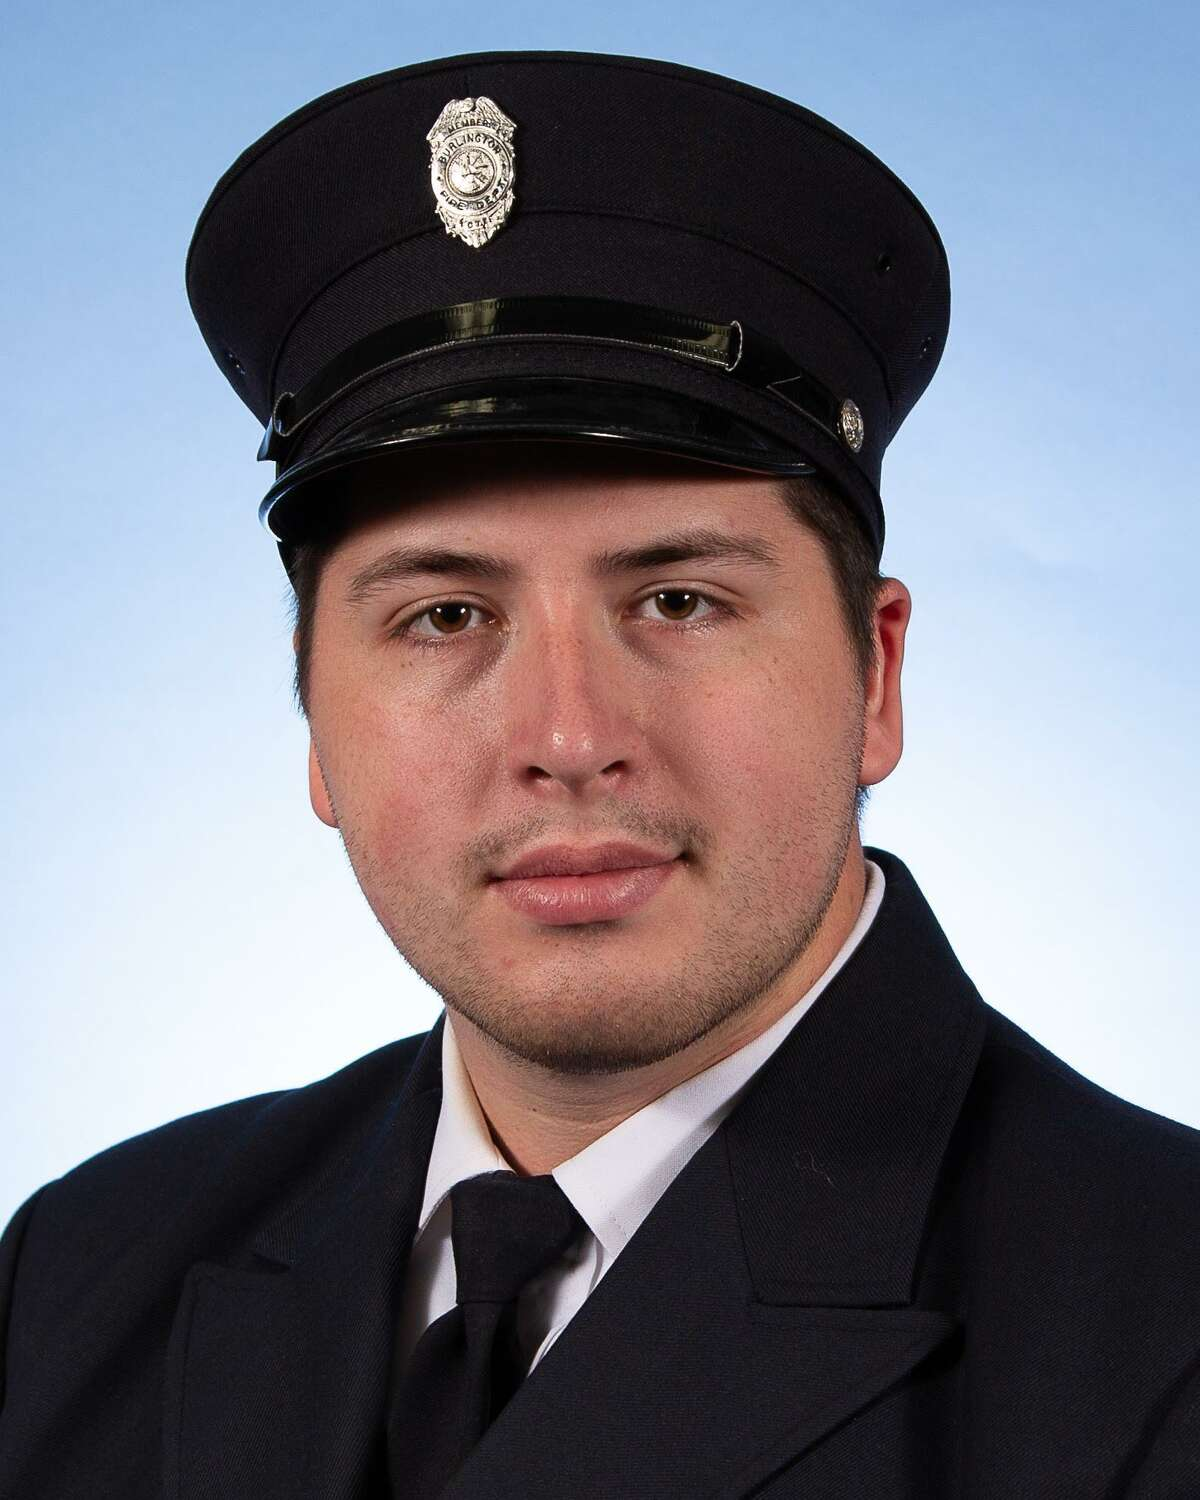 Burlington firefighter and EMT Colin McFadden, 26, suffered a medical emergency while fighting the New Hartford House fire Aug. 10. The fire department is asking people who want to help to donate blood to the American Red Cross, which is citing a severe blood shortage in hospitals.